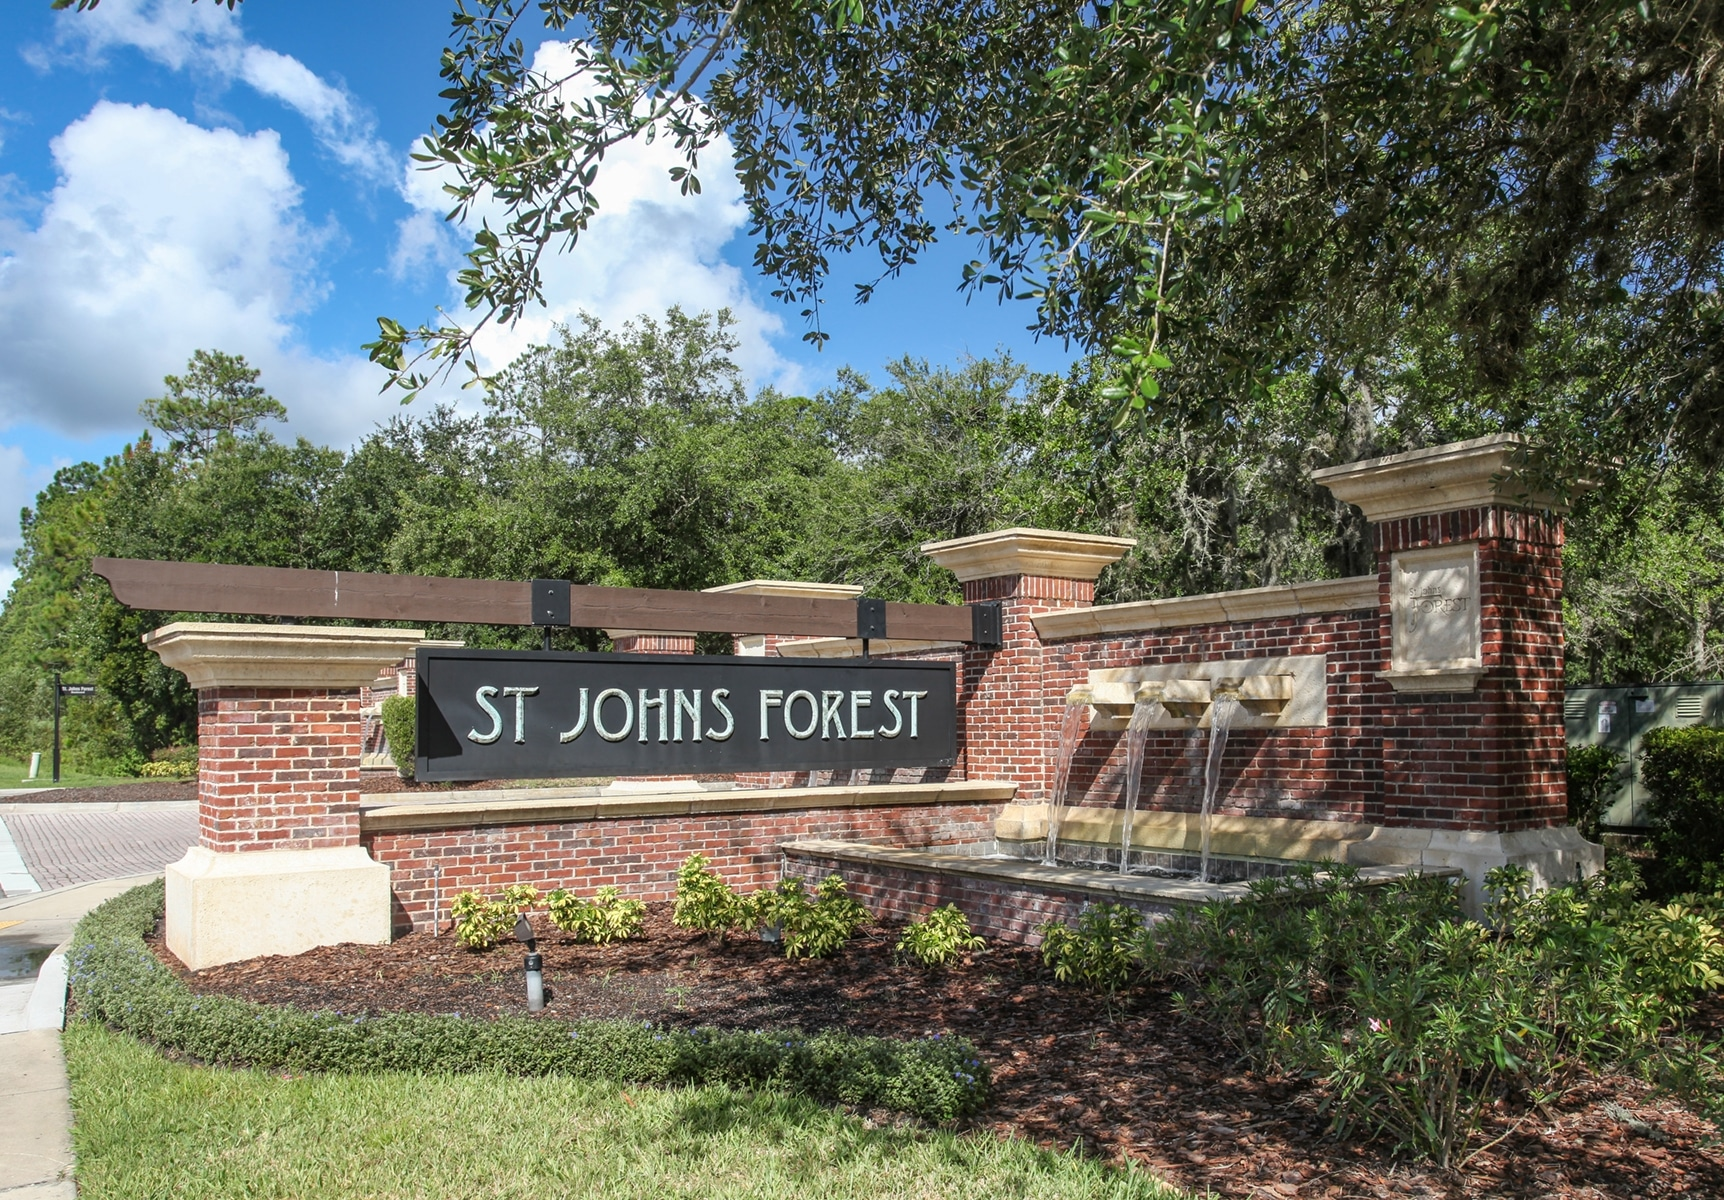 St. Johns Forest